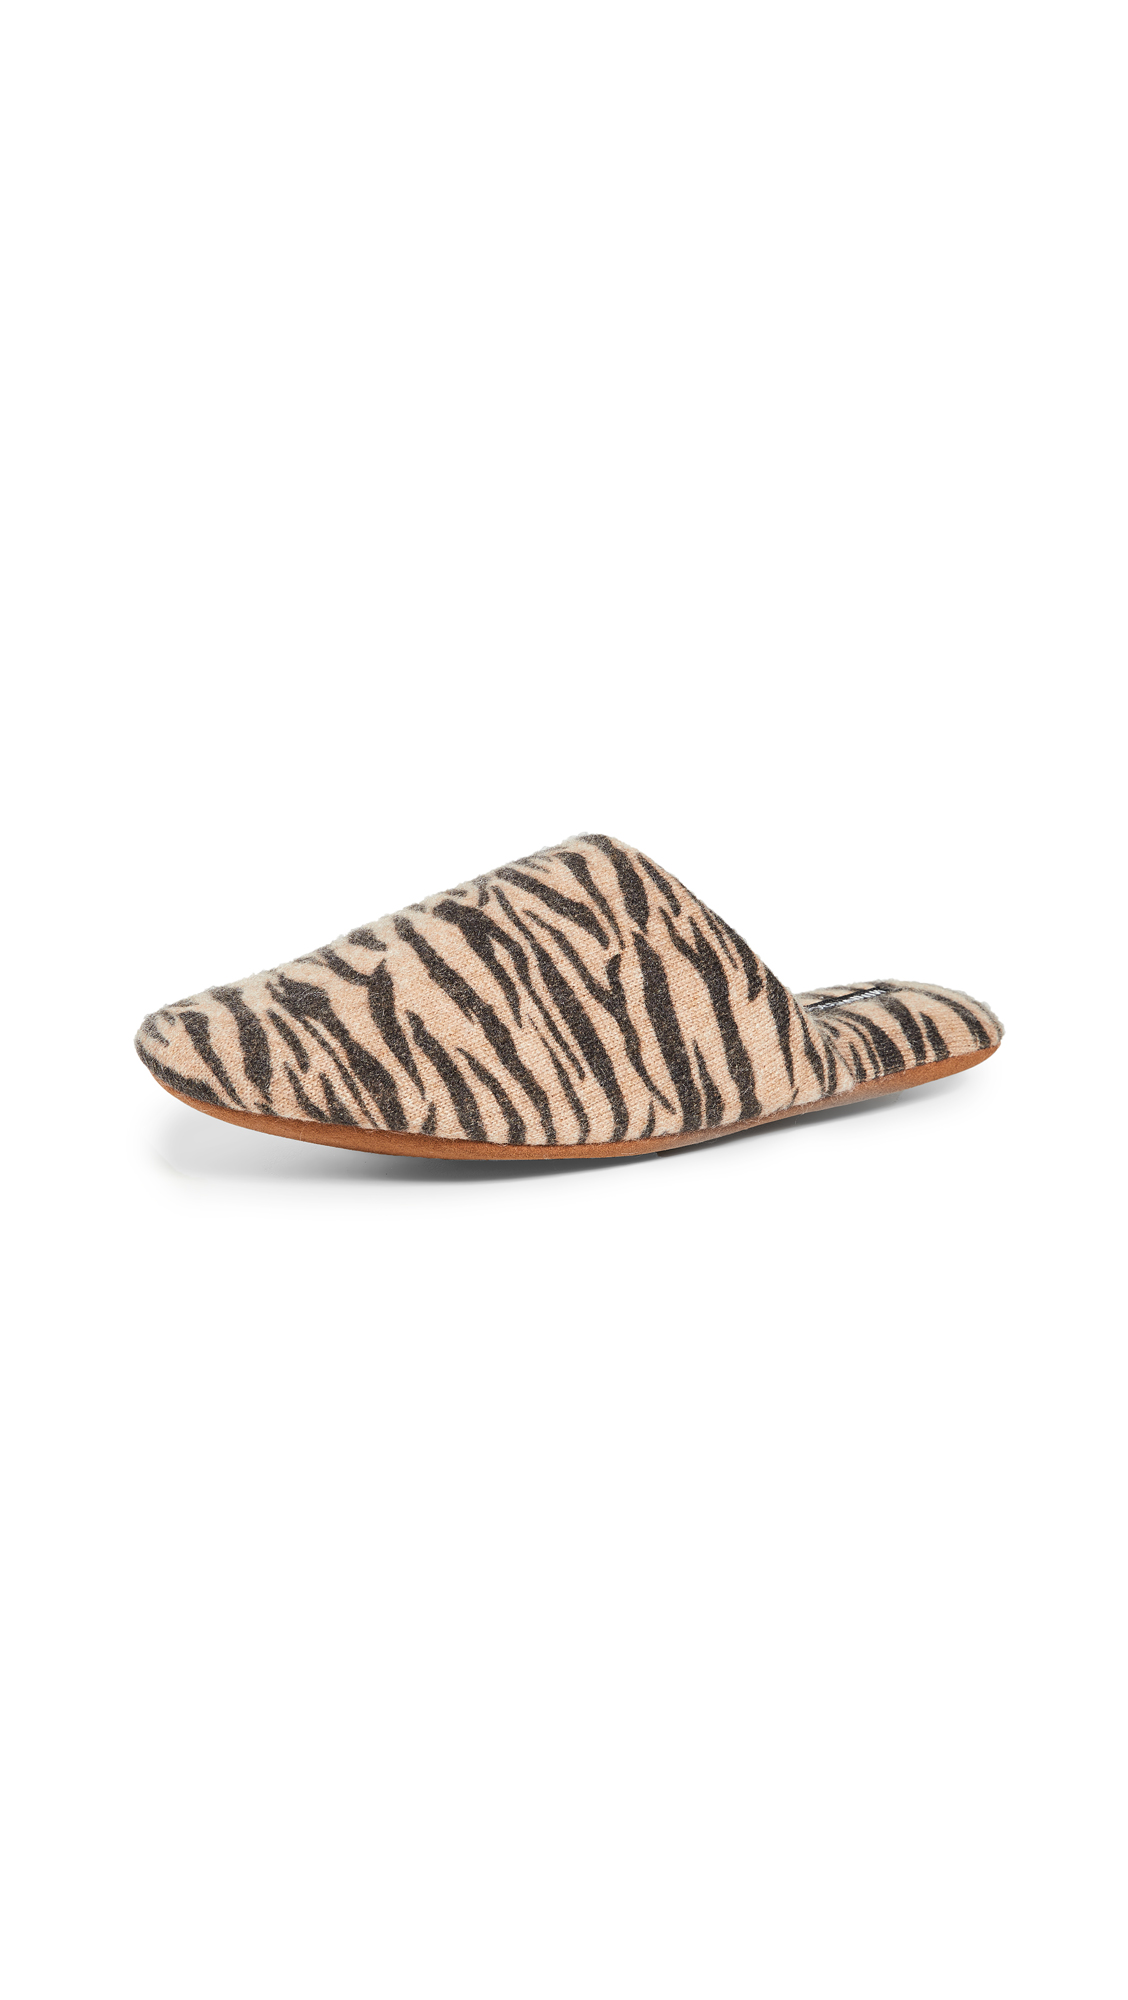 Minnie Rose Tiger Cashmere Slippers – 50% Off Sale